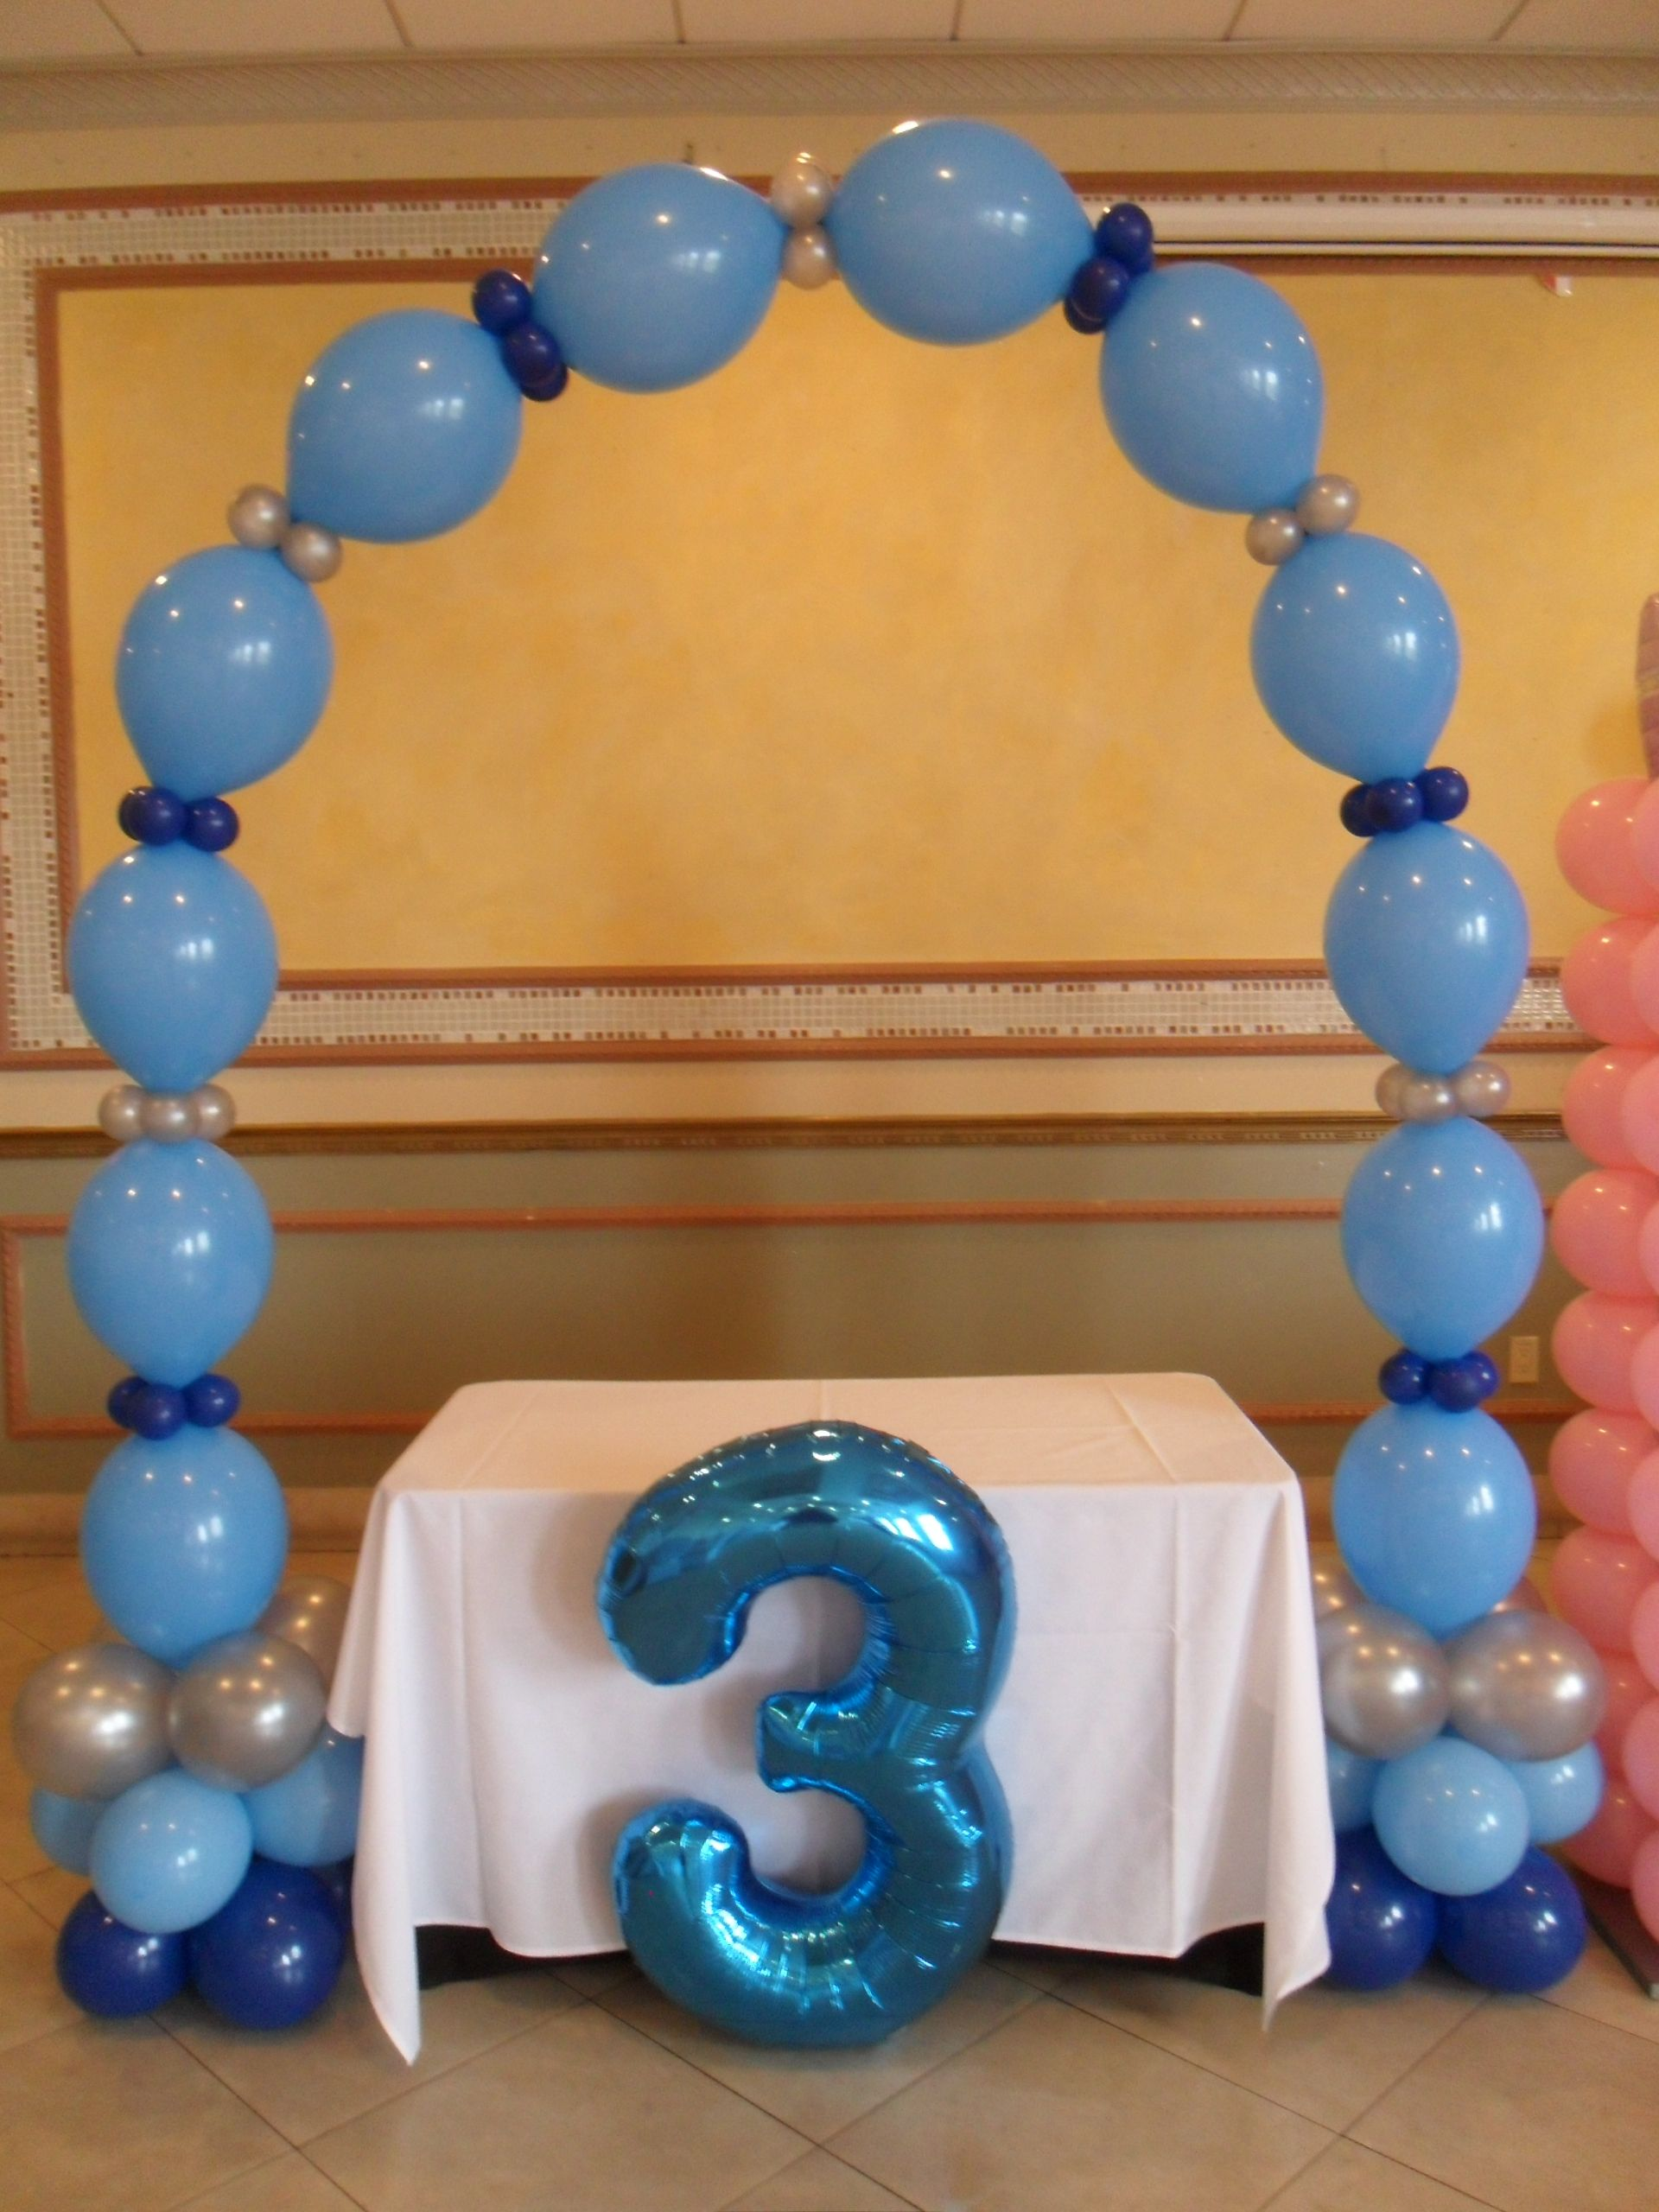 Link balloon arch USING DARK BLUE LIGHT BLUE AND SILVER balloons